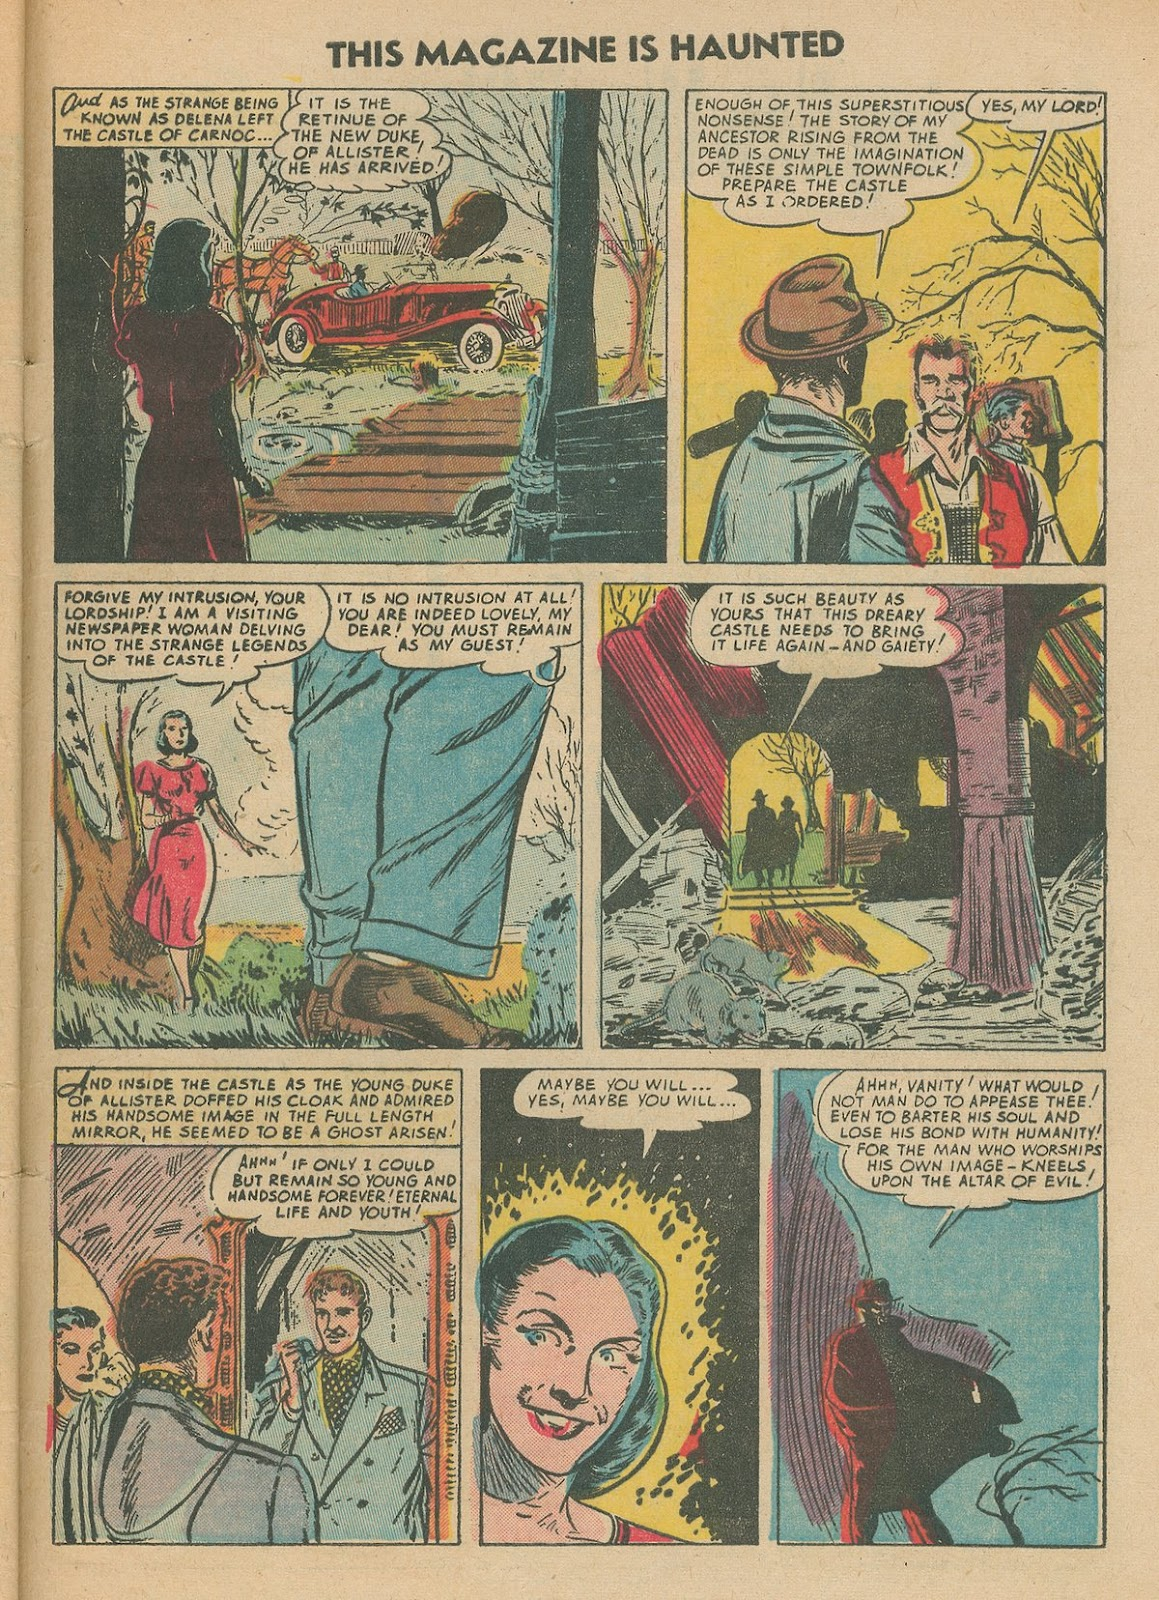 Read online This Magazine Is Haunted comic -  Issue #21 - 33